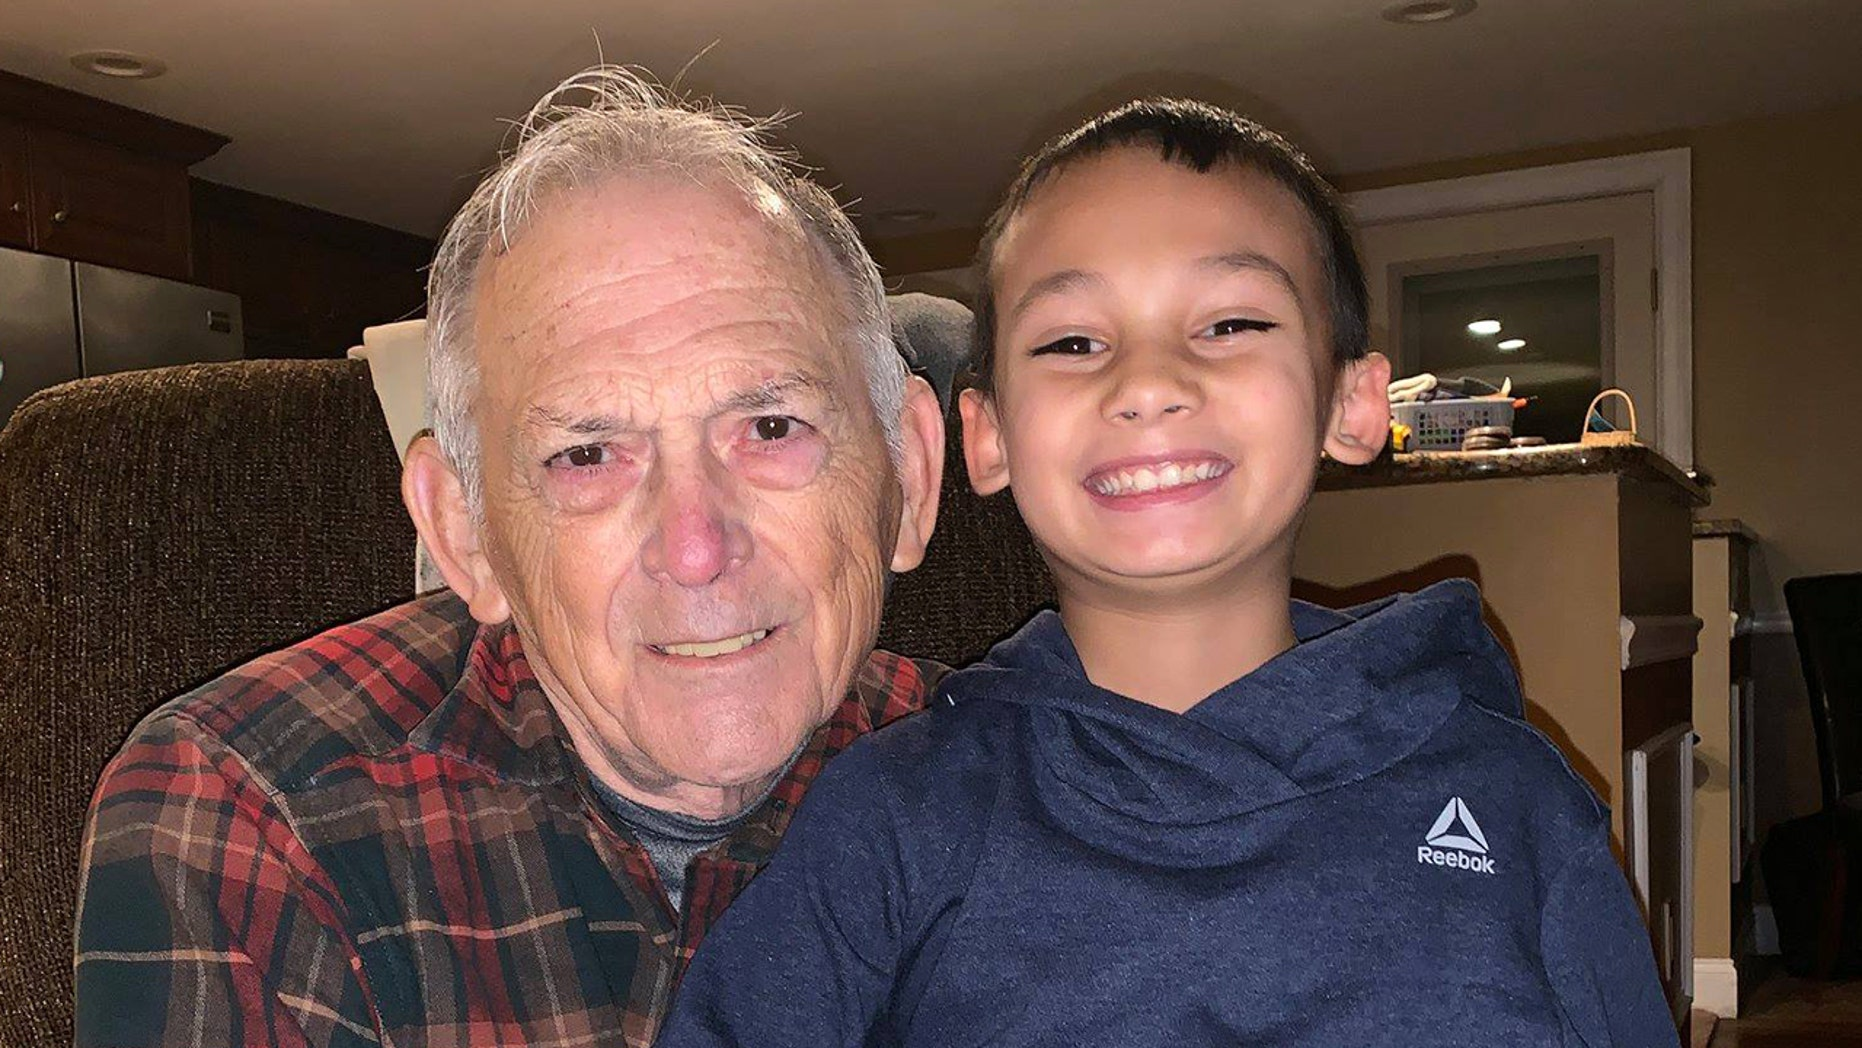 Kazin Crisman was headed for pizza with his grandfather on Saturday when he noticed the 80-year-old struggling to start the car.